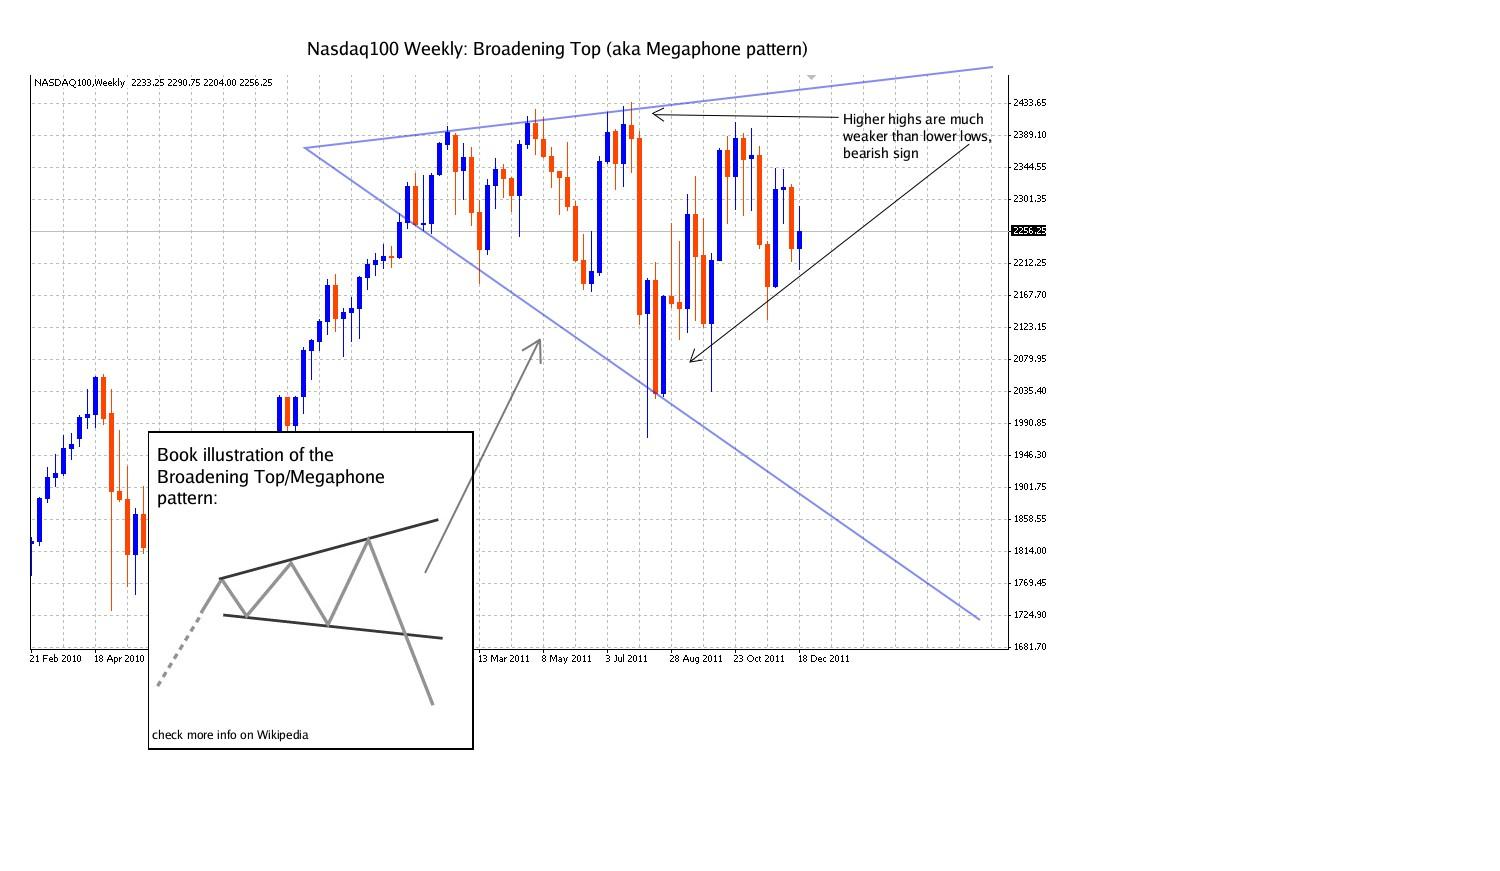 nasdaq weekly broadening top